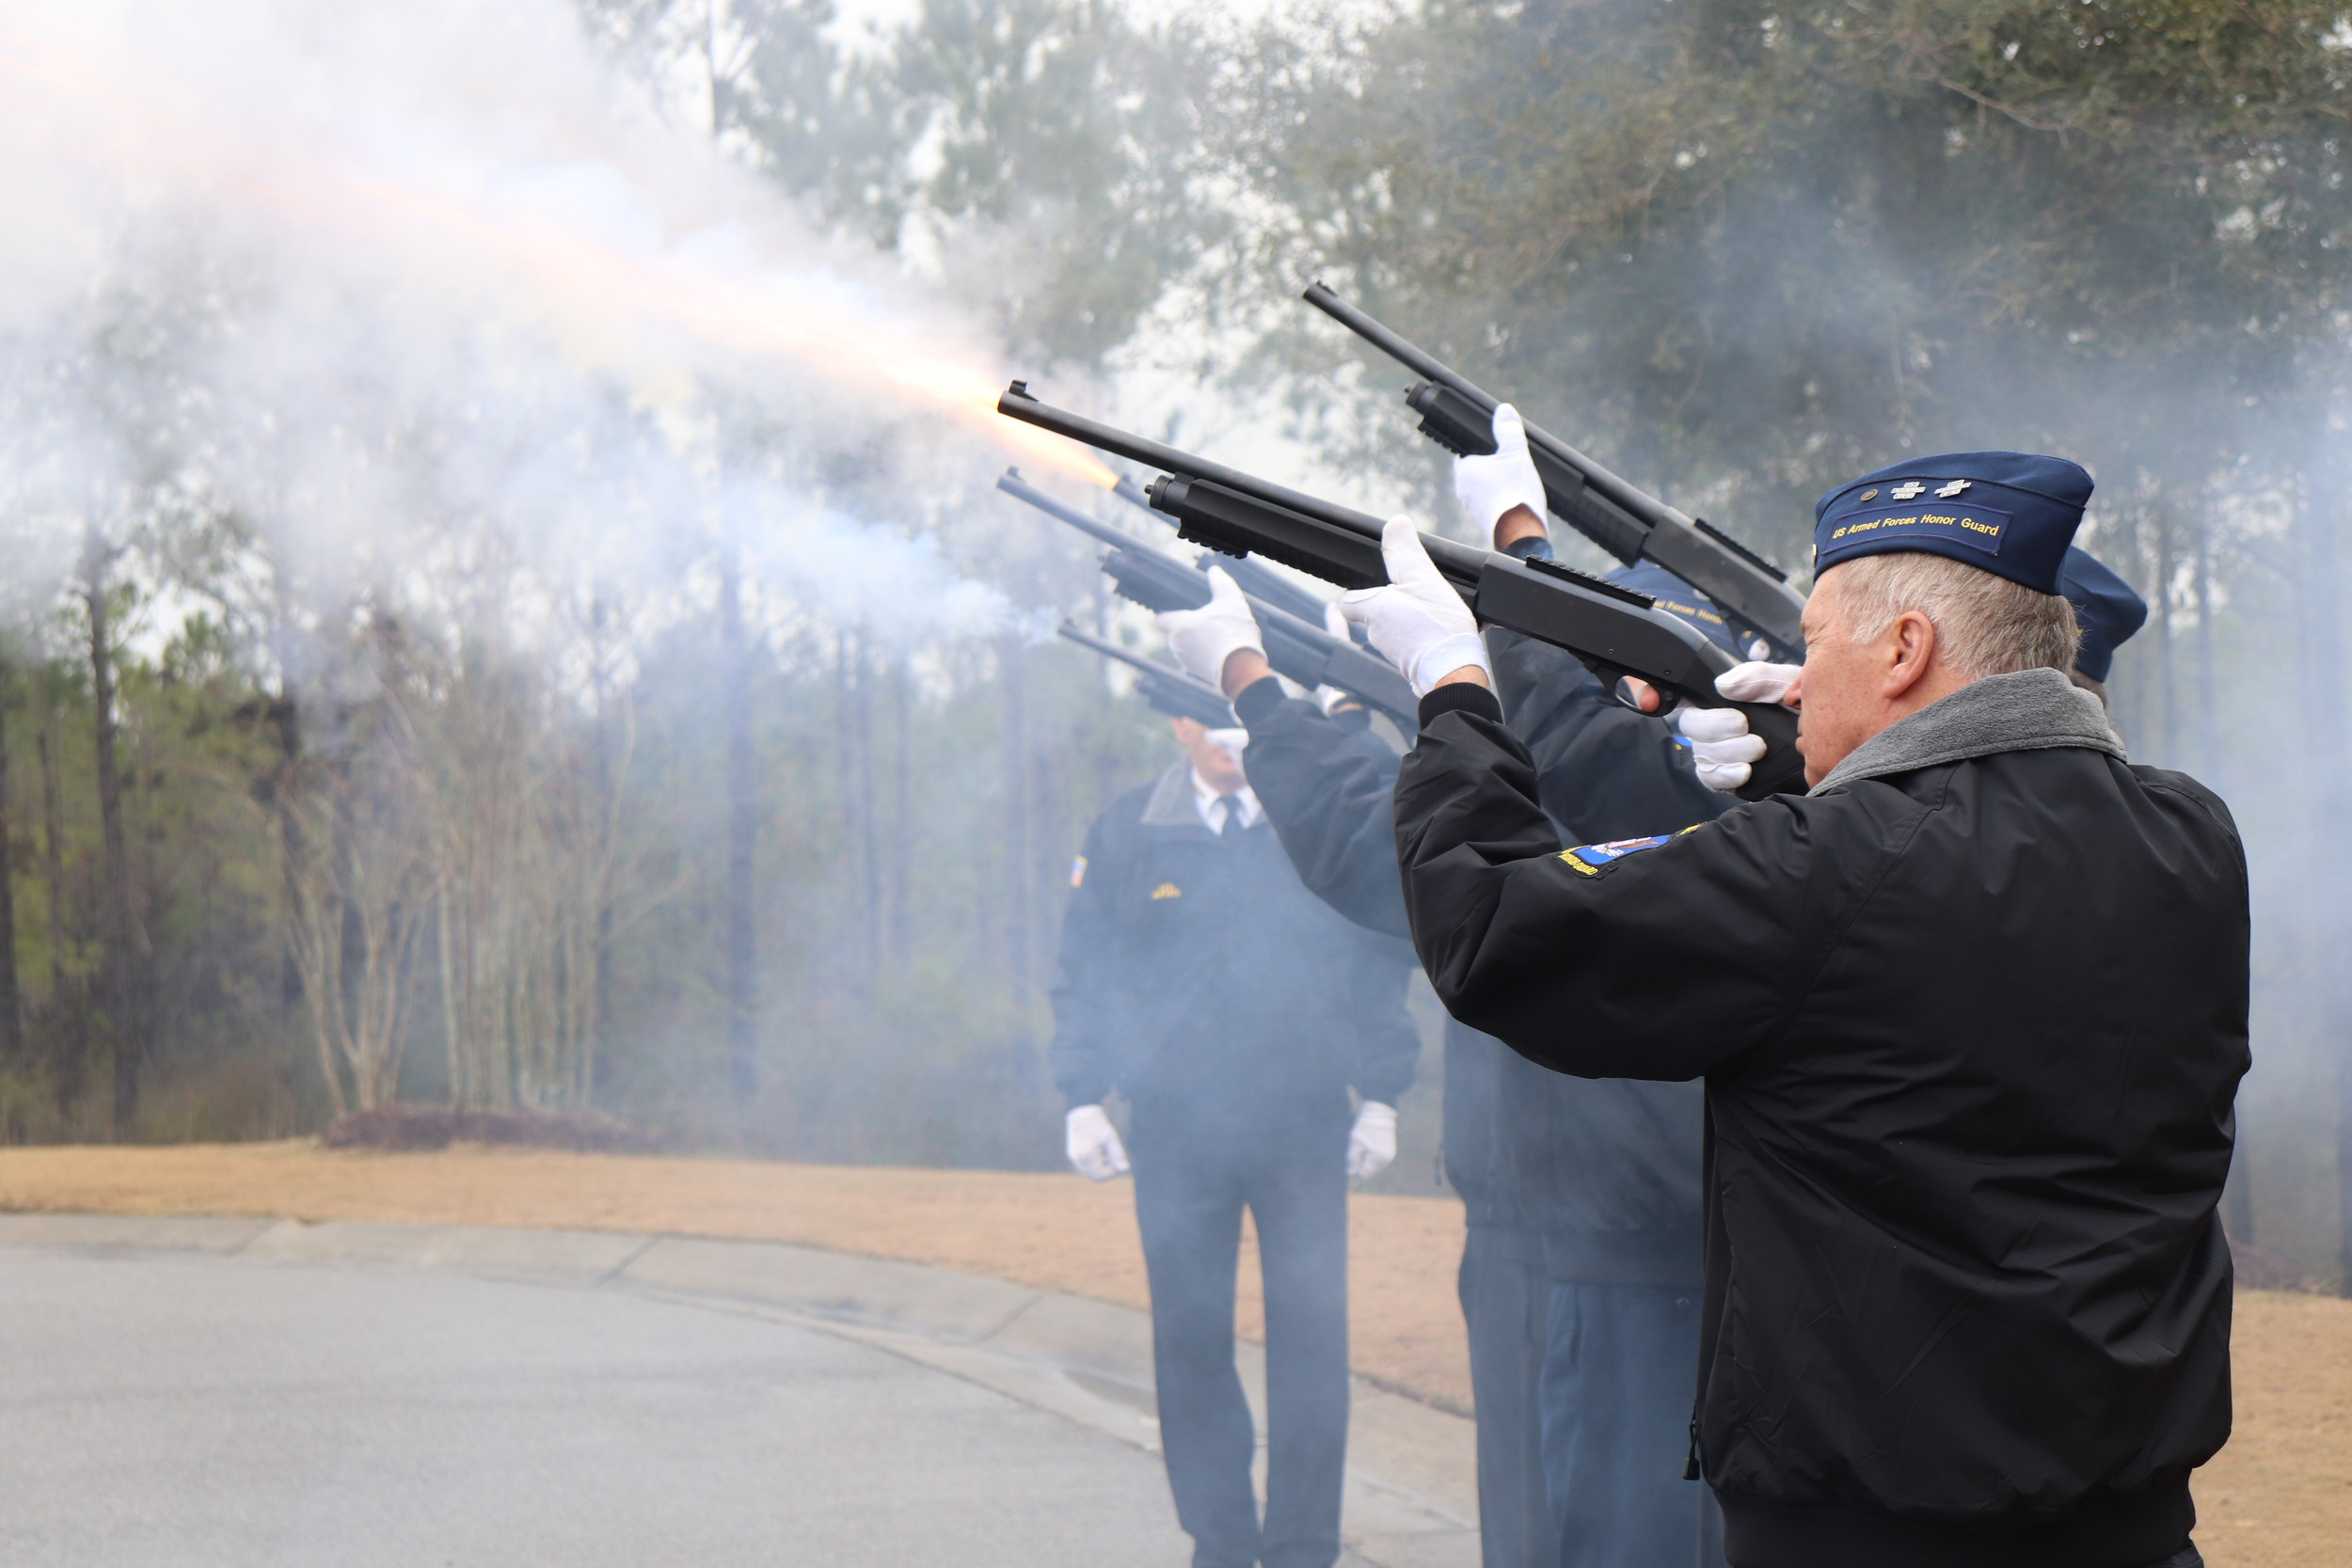 Members of the Central Baldwin County Armed Forces Honor Guard fire the first of three rounds of rifle fire during services for a veteran at the Alabama State Veterans Memorial Cemetery in Spanish Fort.